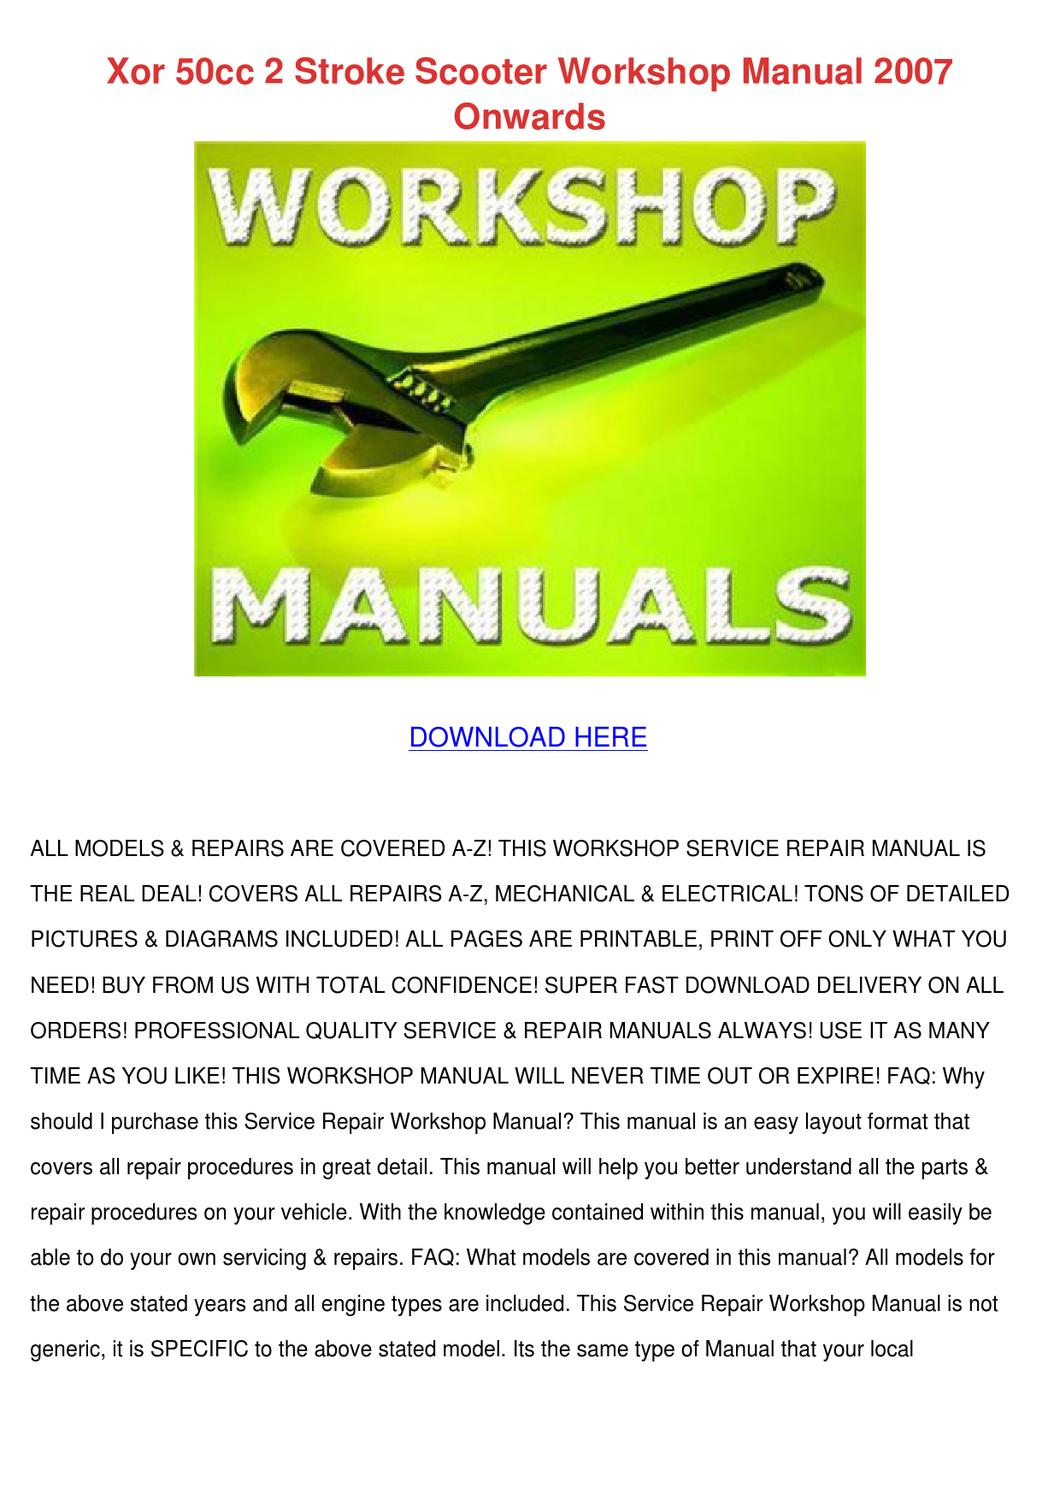 Xor 50cc 2 Stroke Scooter Workshop Manual 200 by Phoebe Constantine - issuu